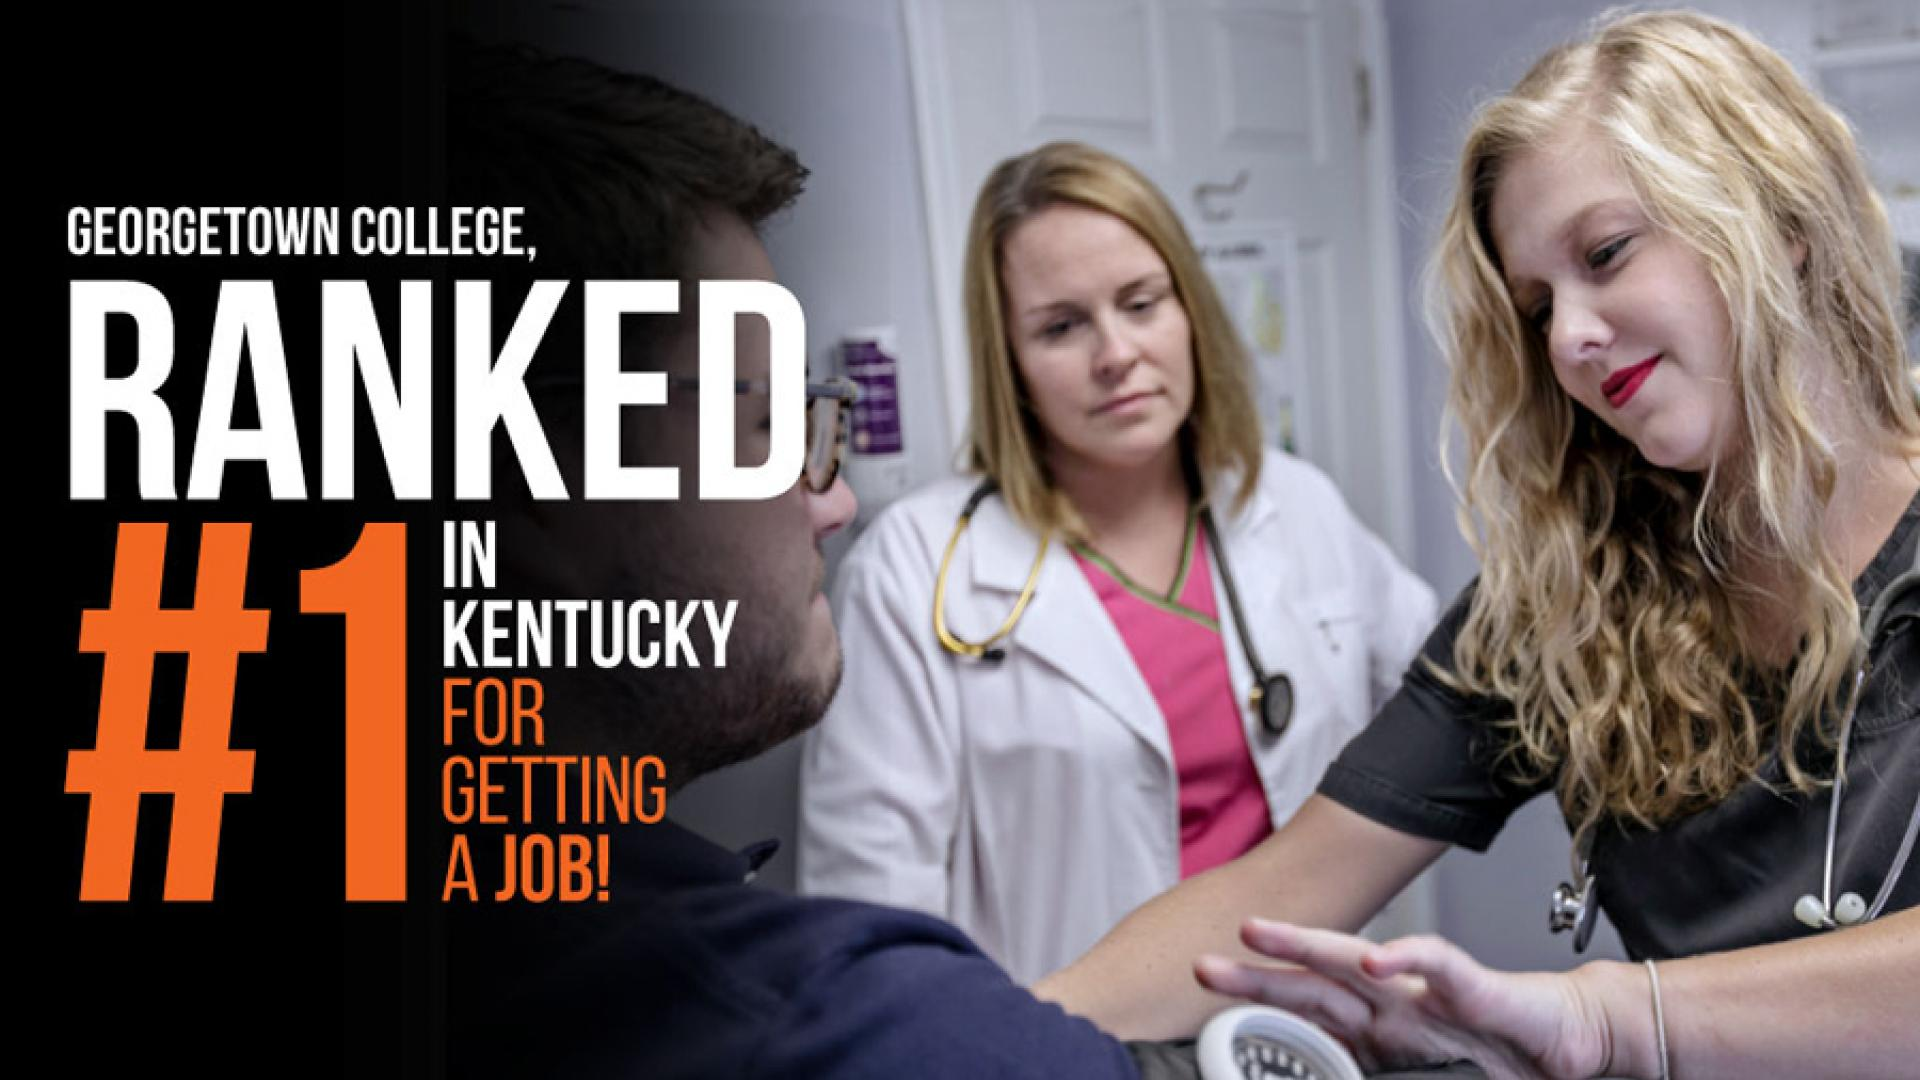 """Georgetown College  Ranked #1 in Kentucky for """"Getting A Job"""""""